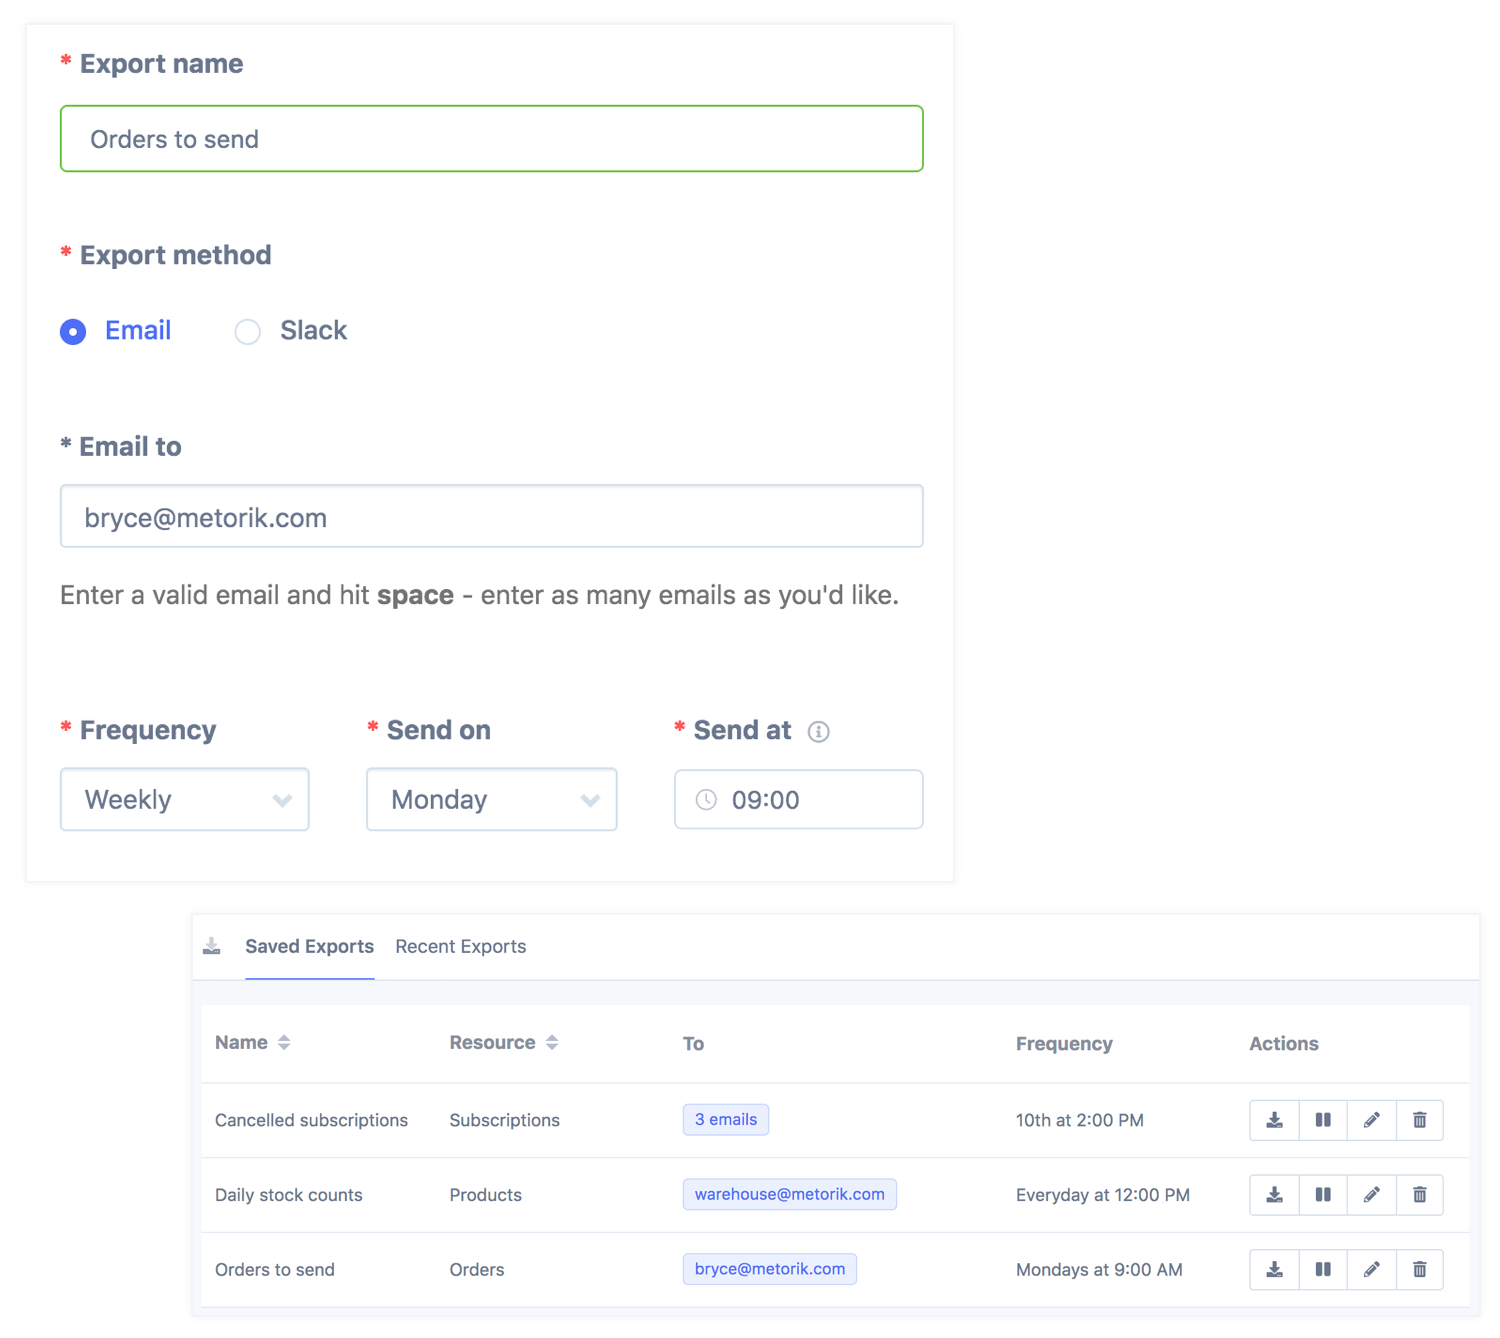 Save time with automatic recurring exports